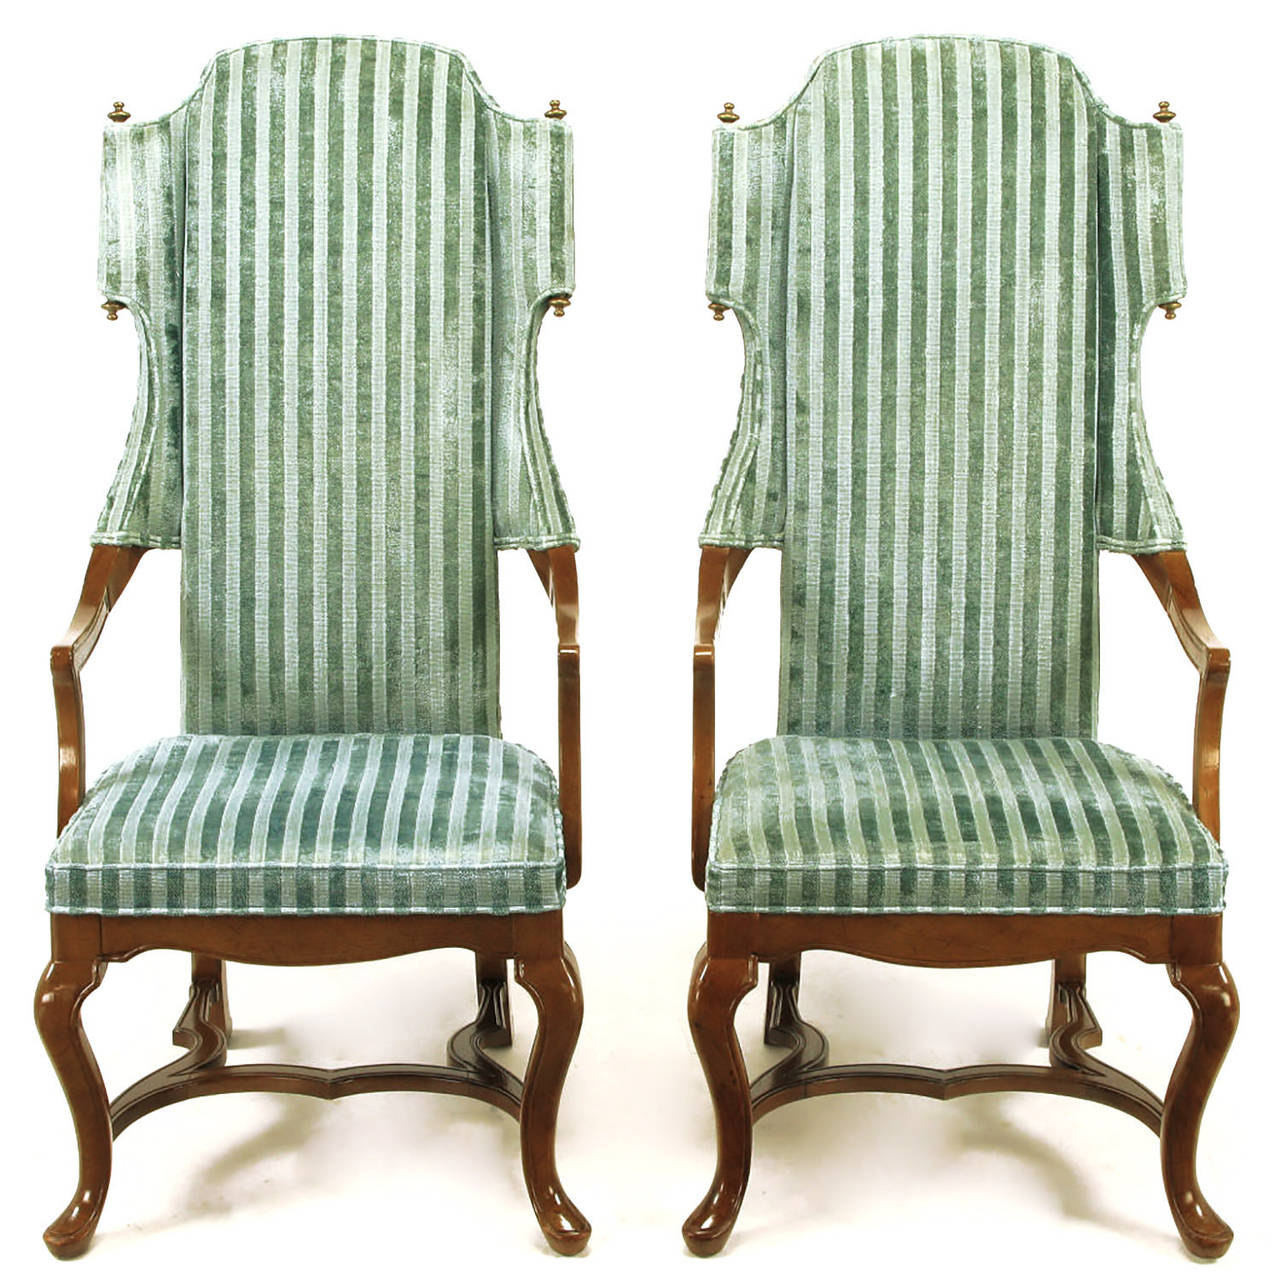 Tall back armchairs by Jim Peed for his Esperanto collection for Drexel. Open sides and unexpected scrolled wings with top and bottom brass finials. Walnut frames with cabriole front legs, raked rear legs and undulating H-form stretcher. Upholstered